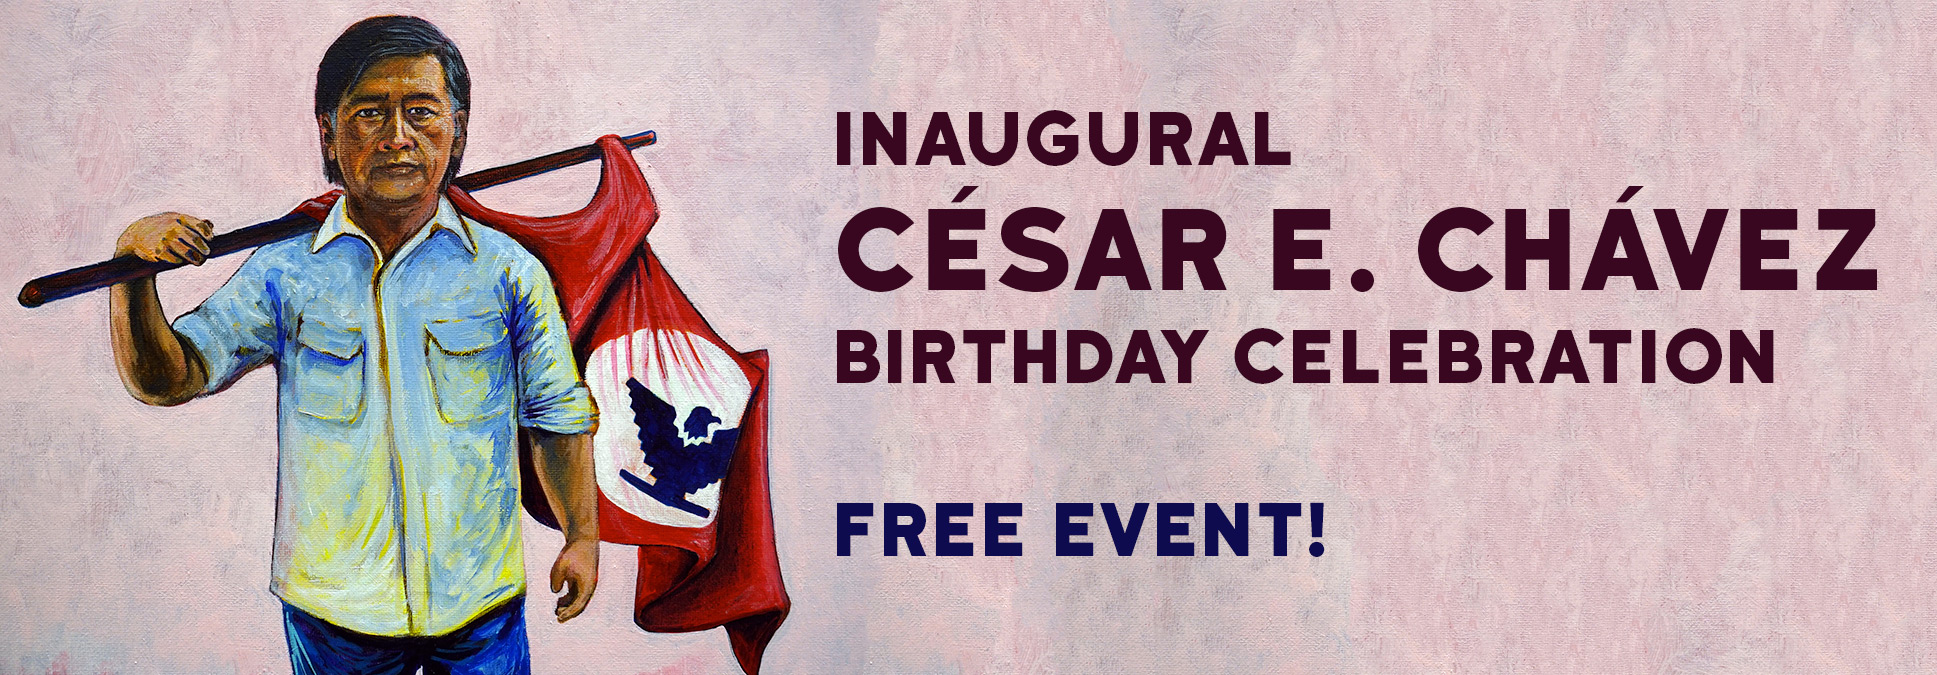 Cesar E Chavez Birthday Celebration at the Marcus Center in Milwaukee